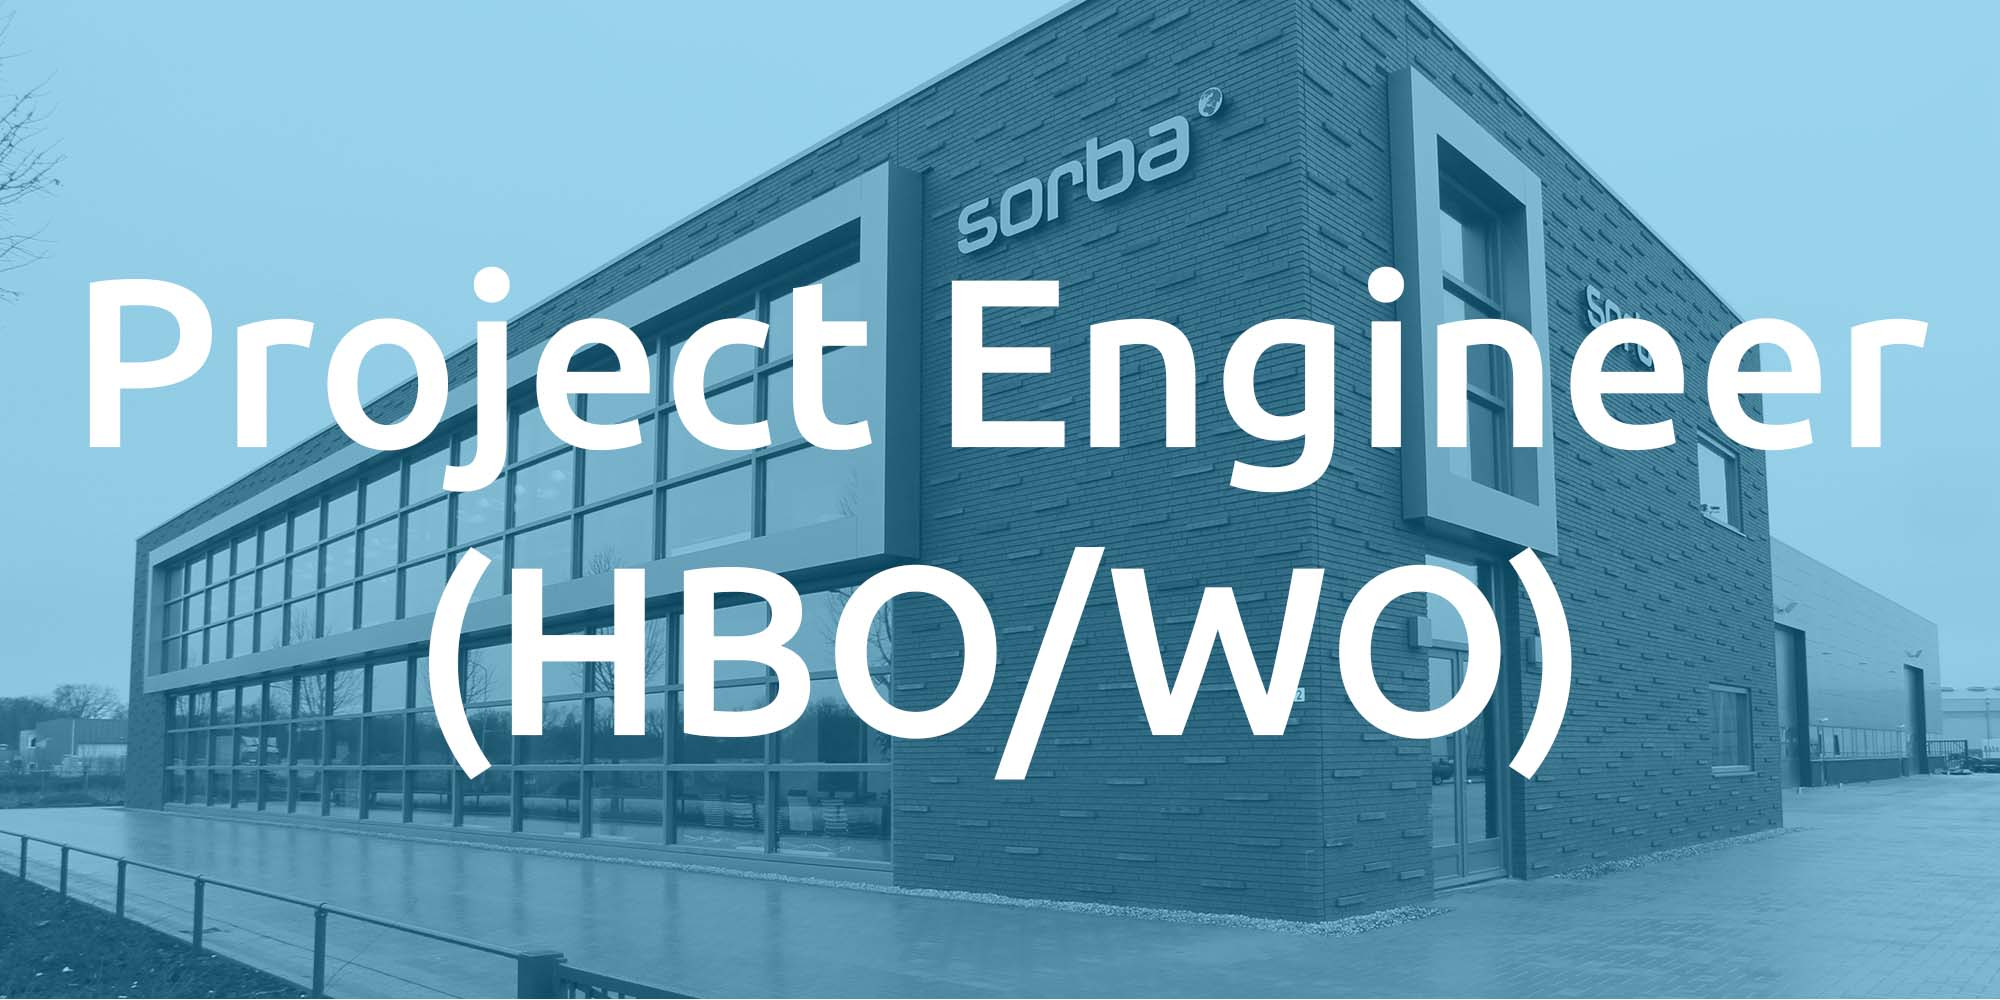 Vacature Project Engineer (HBO/WO)